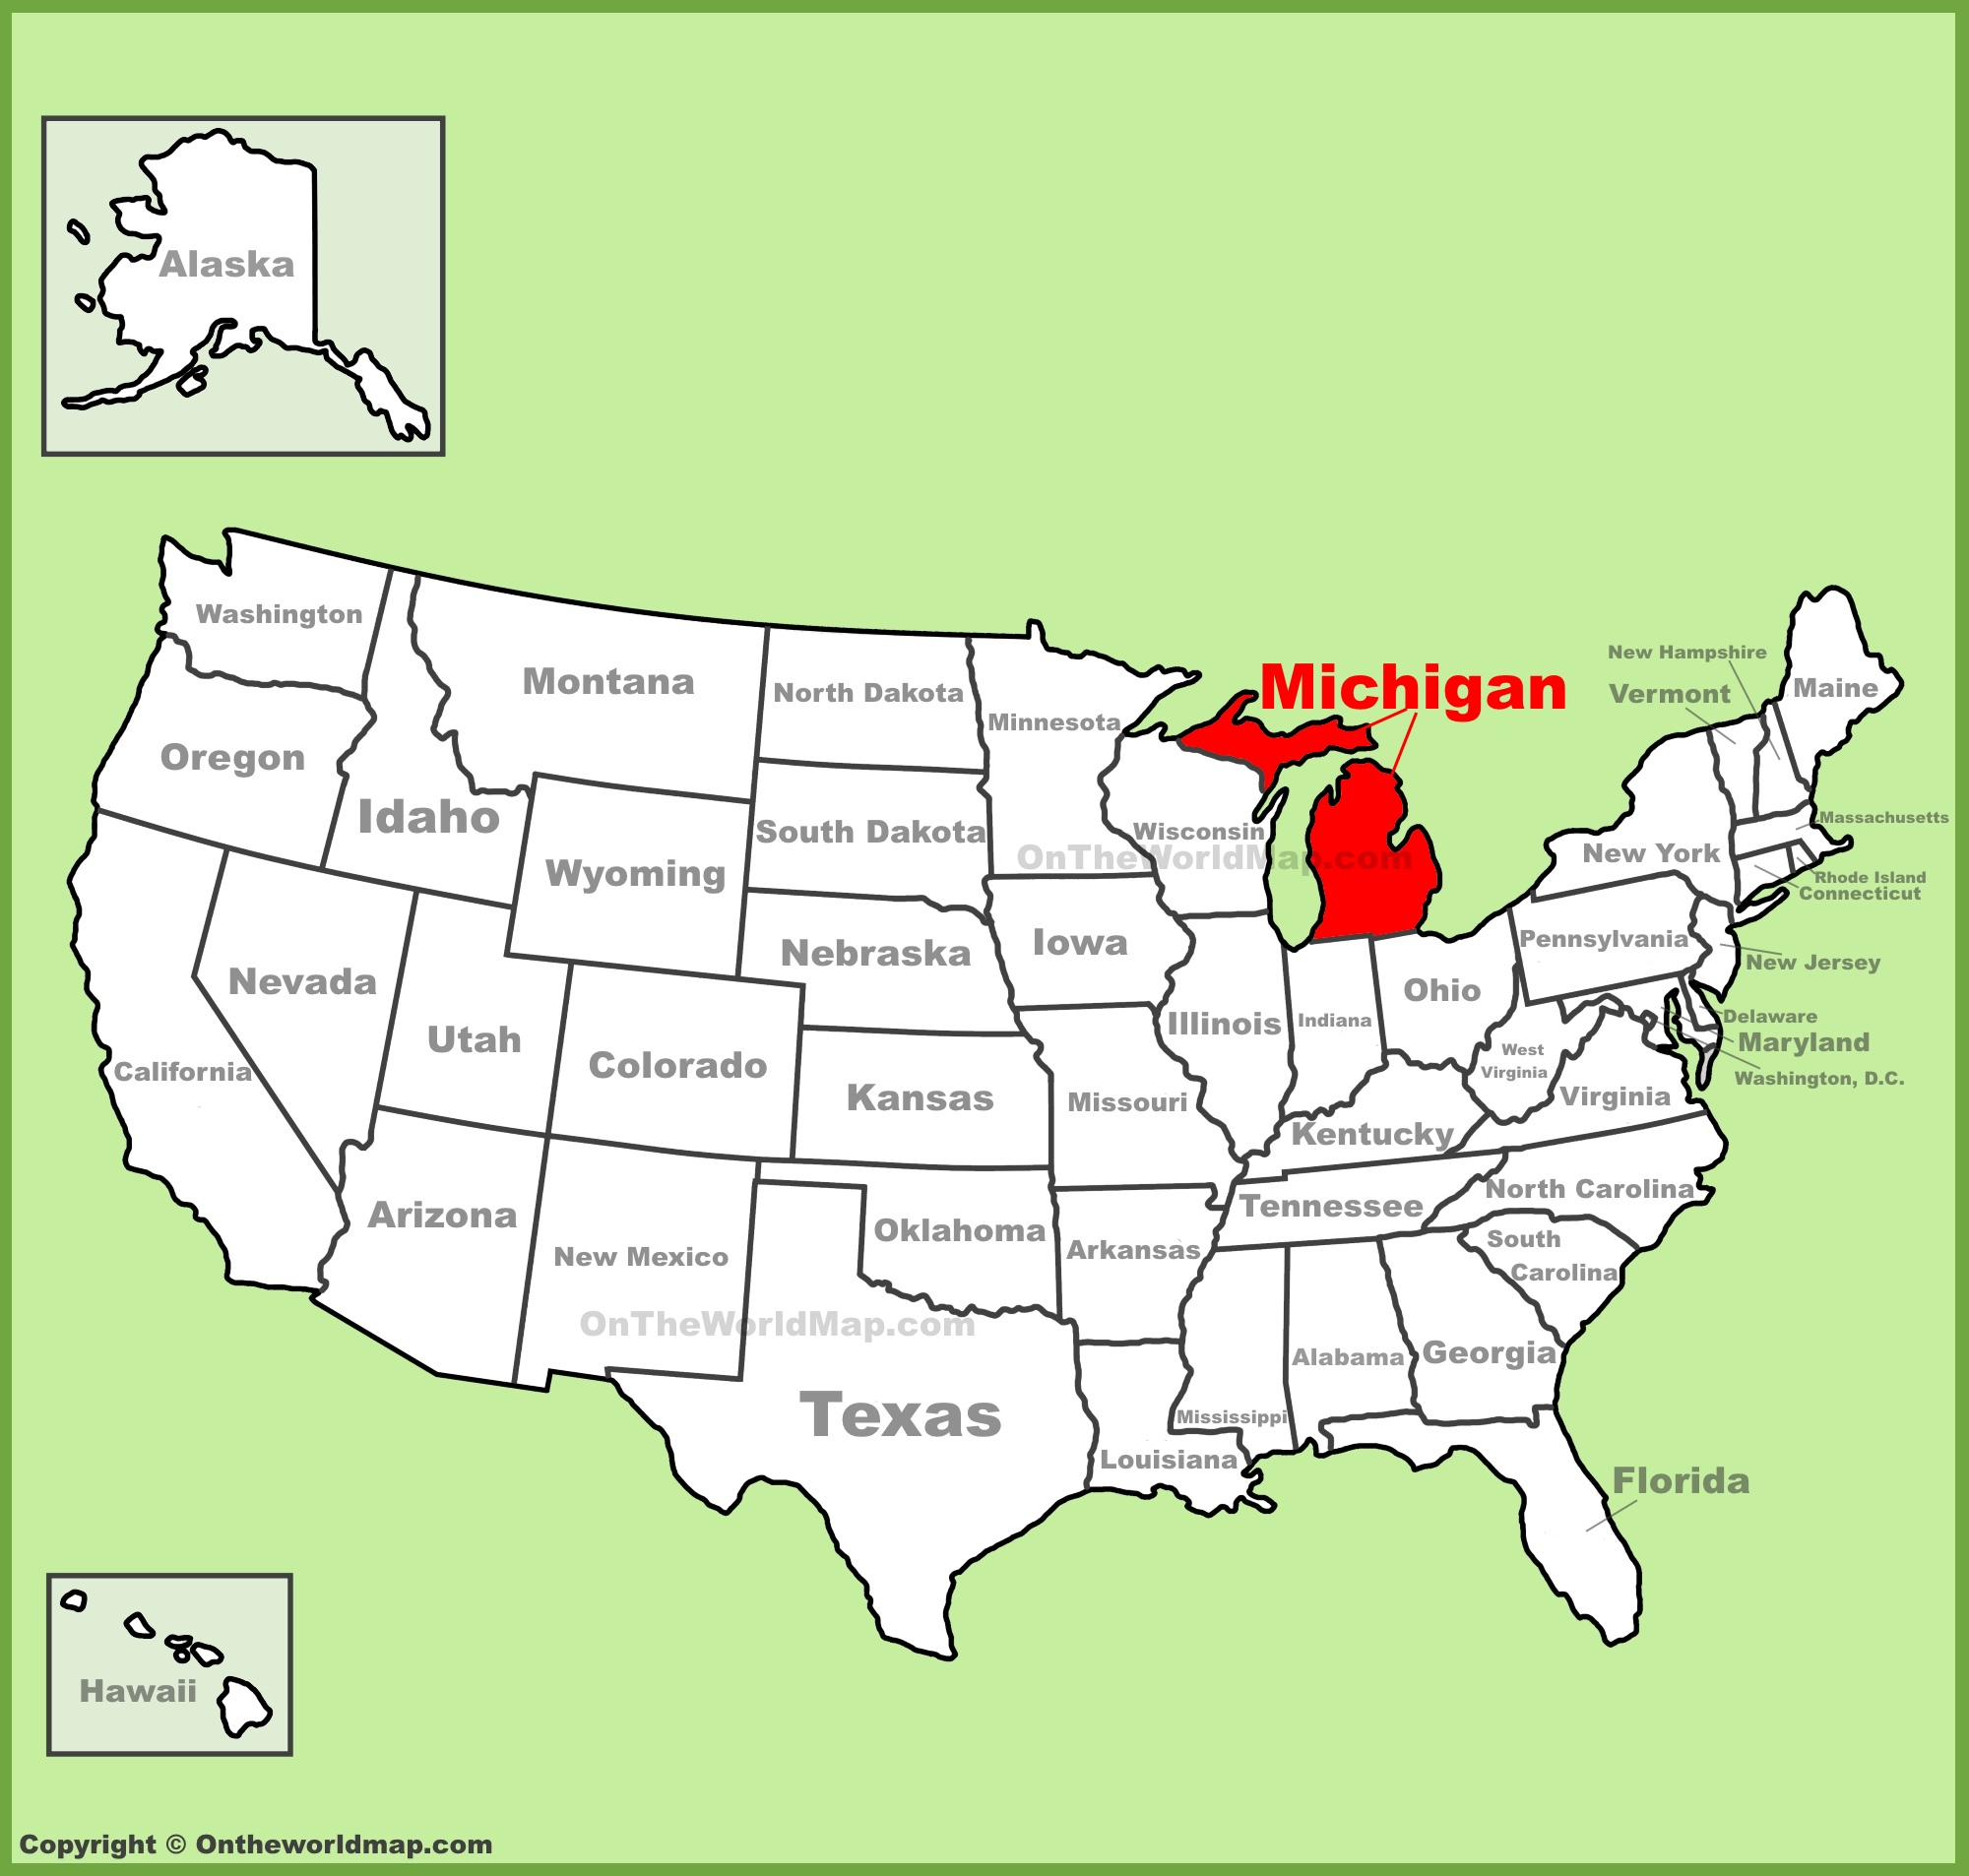 Michigan State Maps USA Maps Of Michigan MI - Michigan on a us map